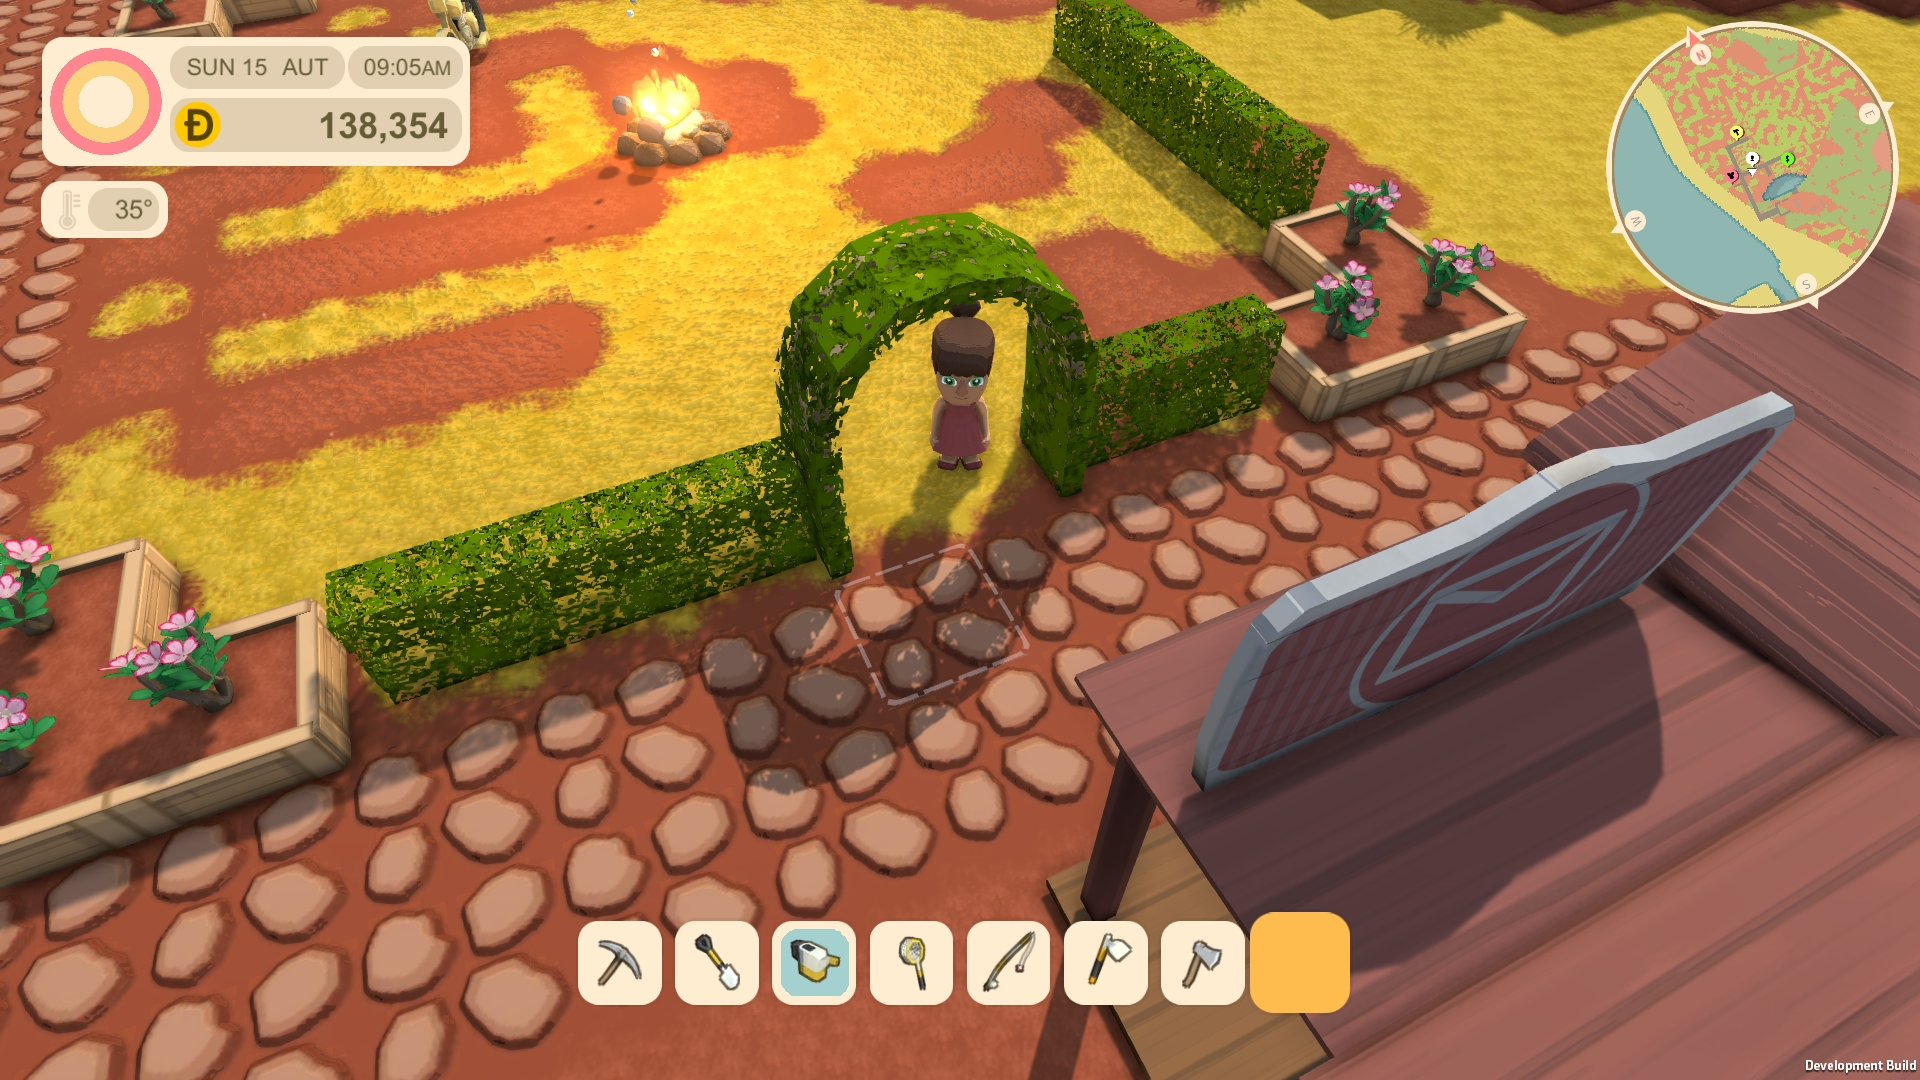 Hedge arch and flowerbeds to decorate your town.